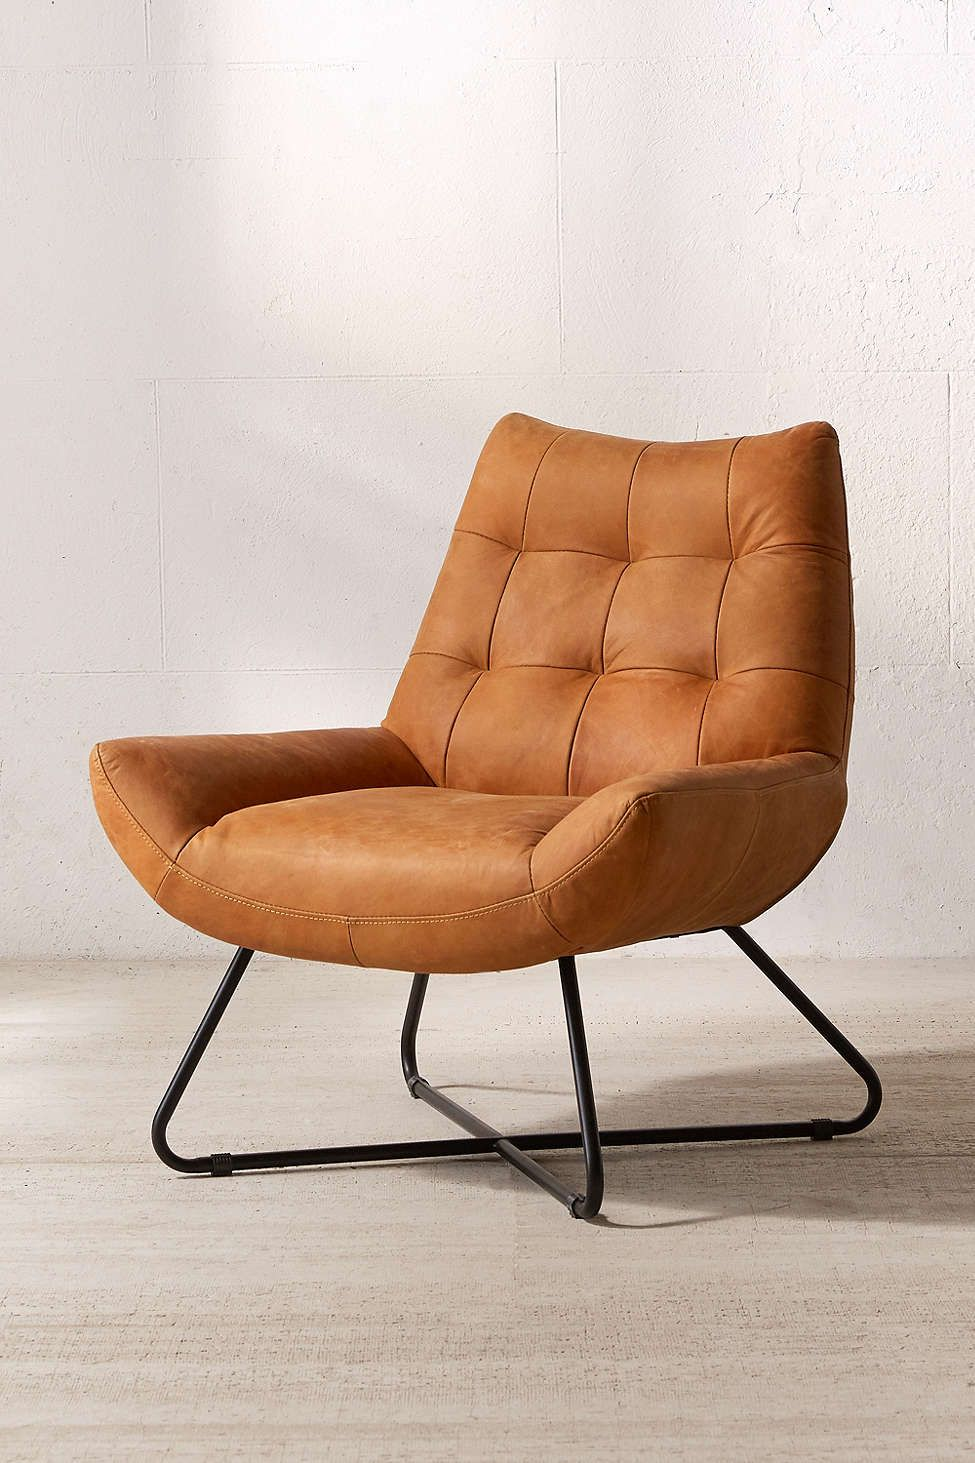 Modern Leather Chairs Modern But Comfy Leather Lounger Chair Urban Outfitters Picks